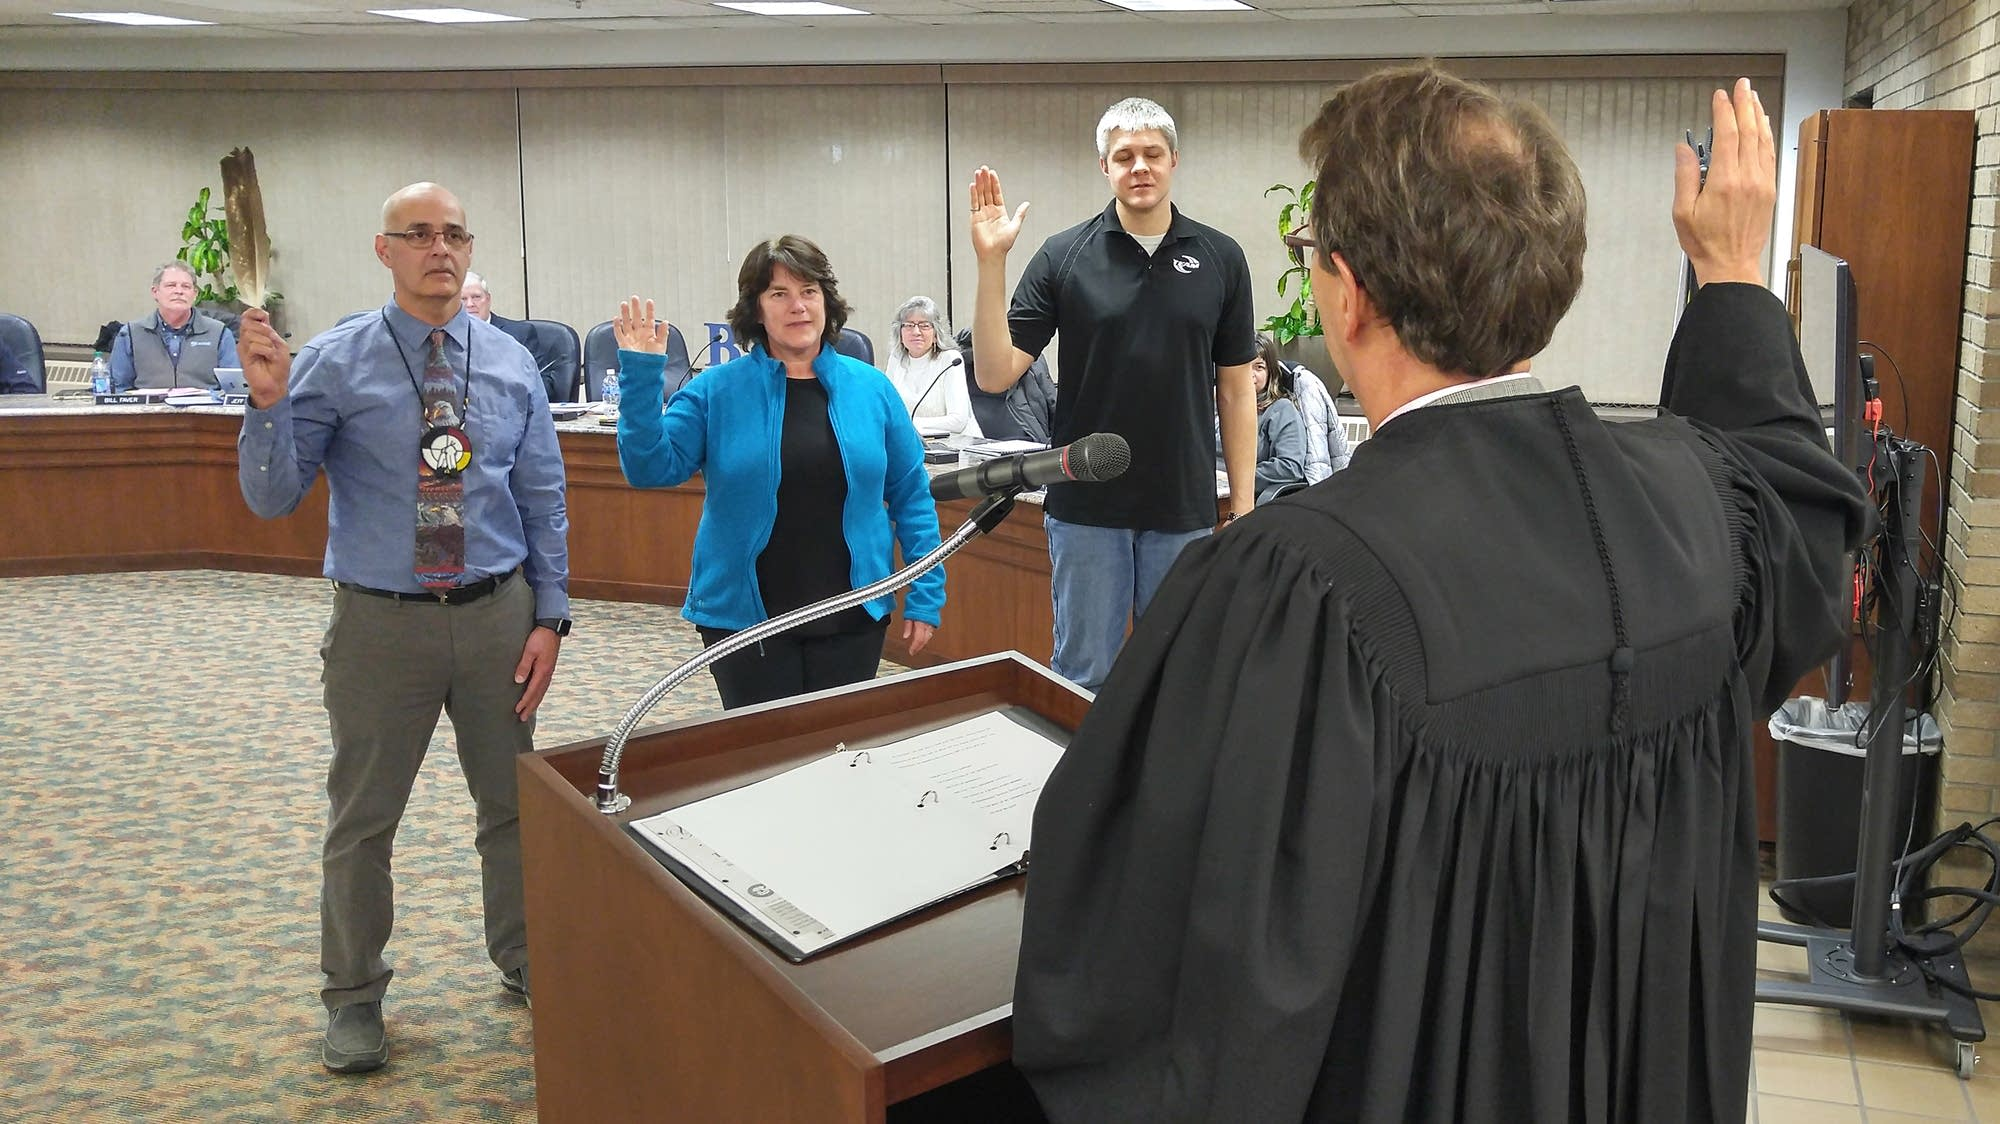 Judge Paul Benshoof swears in Bemidji Area Schools board members in Jan.